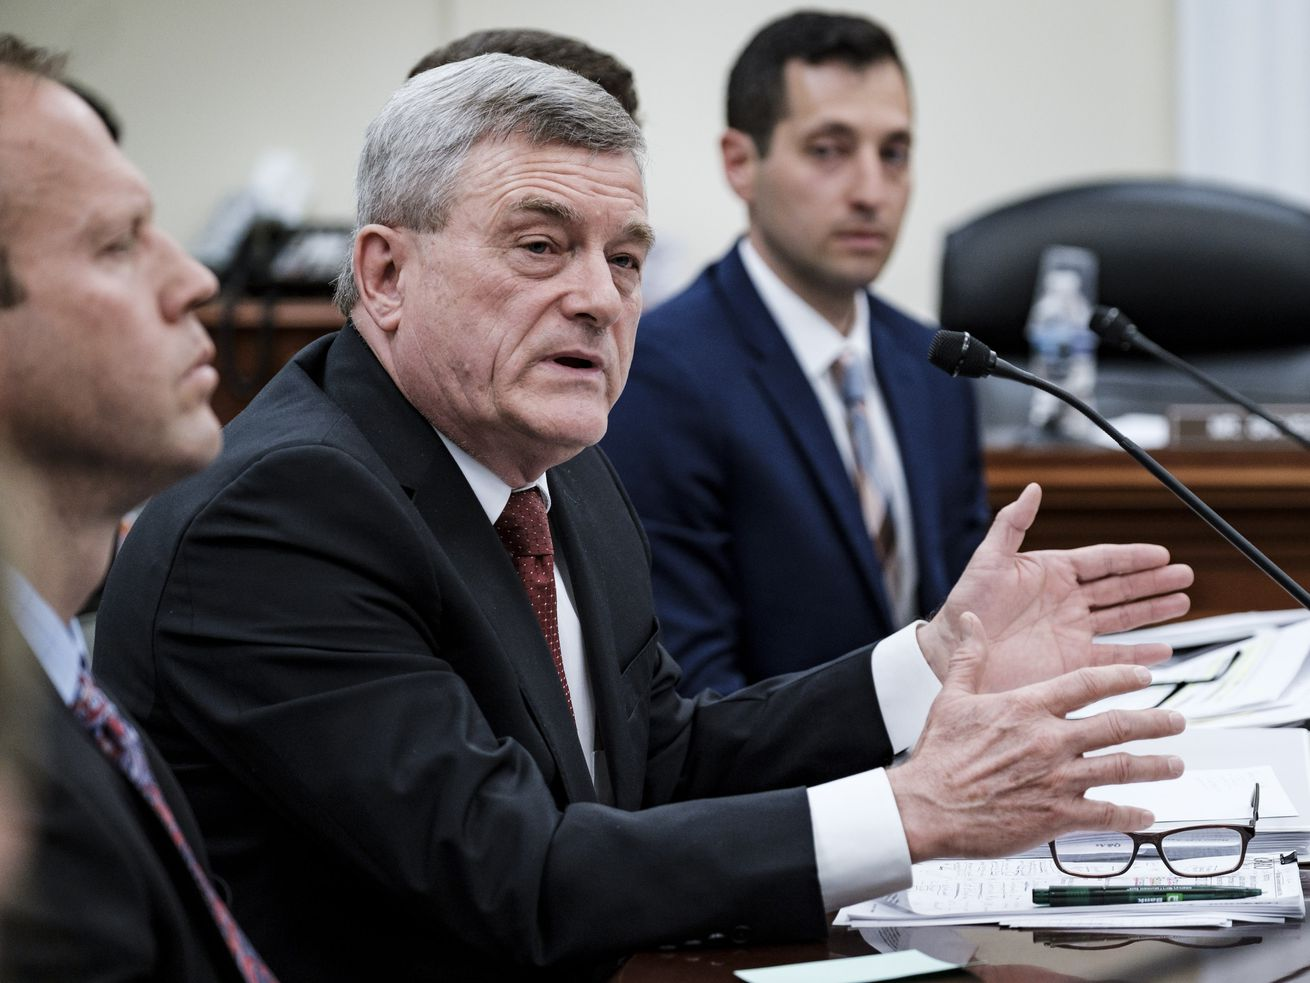 Census Bureau Director Steven Dillingham testifies before a House Appropriations Subcommittee about preparations for the upcoming 2020 census, on April 30, 2019, in Washington, DC.